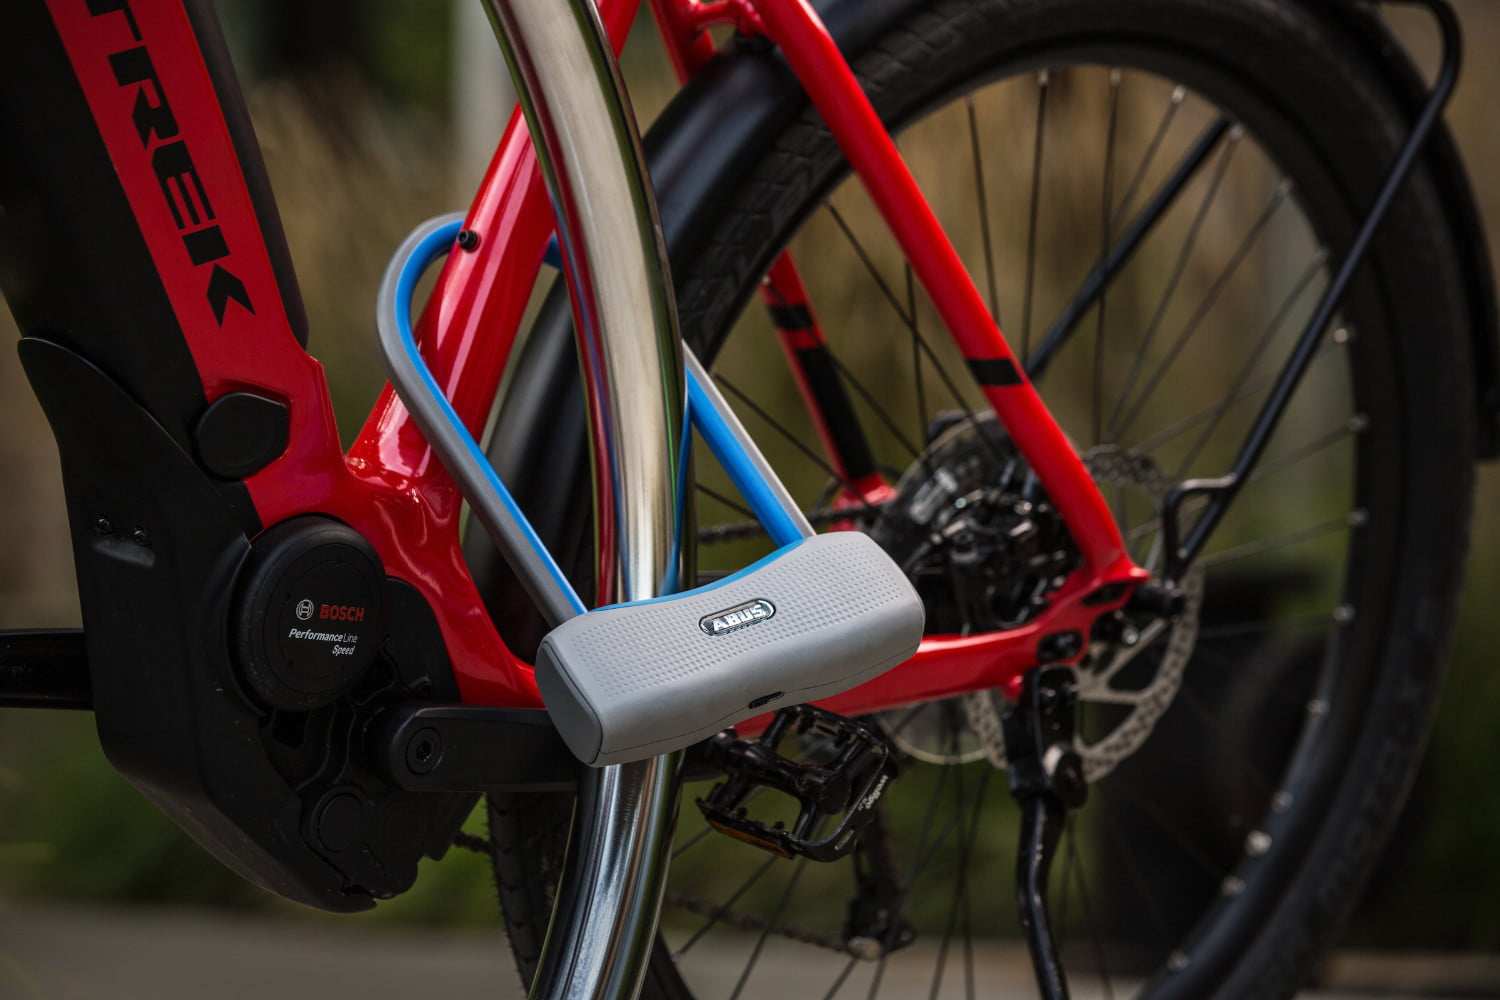 abus 770a smartx proximity aware intelligent u lock protects your ride 20180821  s8a1095 1